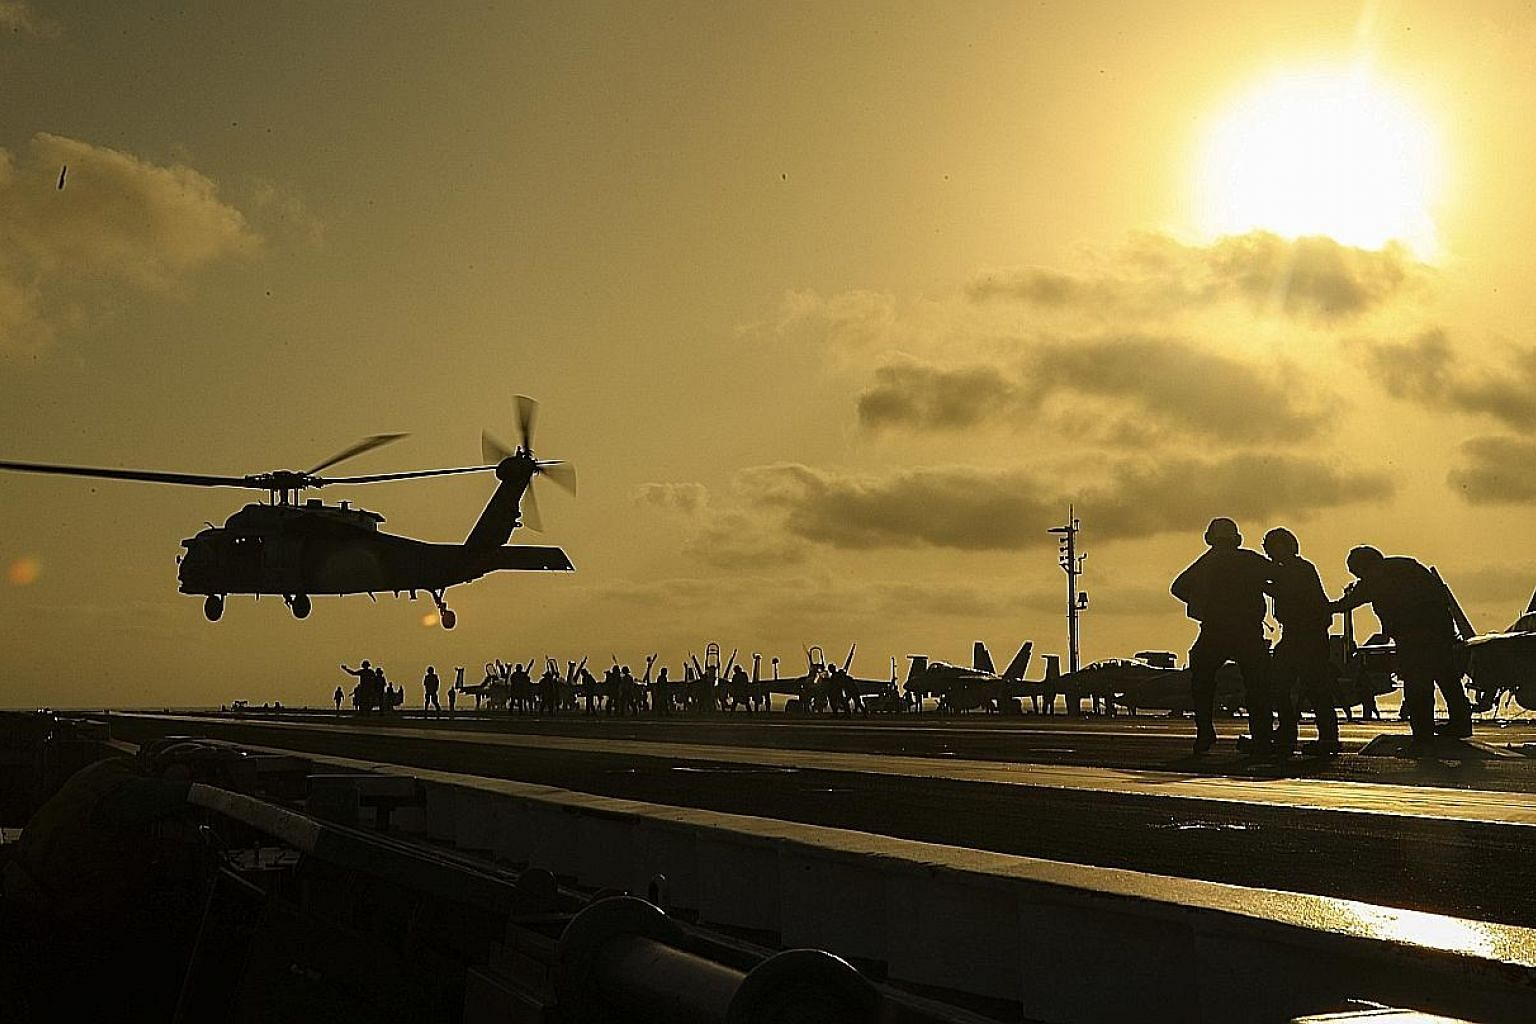 A helicopter lifting off from aircraft carrier USS Abraham Lincoln in the Arabian Sea. The US' defence chief this week announced the deployment of about 1,000 more troops to the Middle East for defensive purposes. PHOTO: EPA-EFE